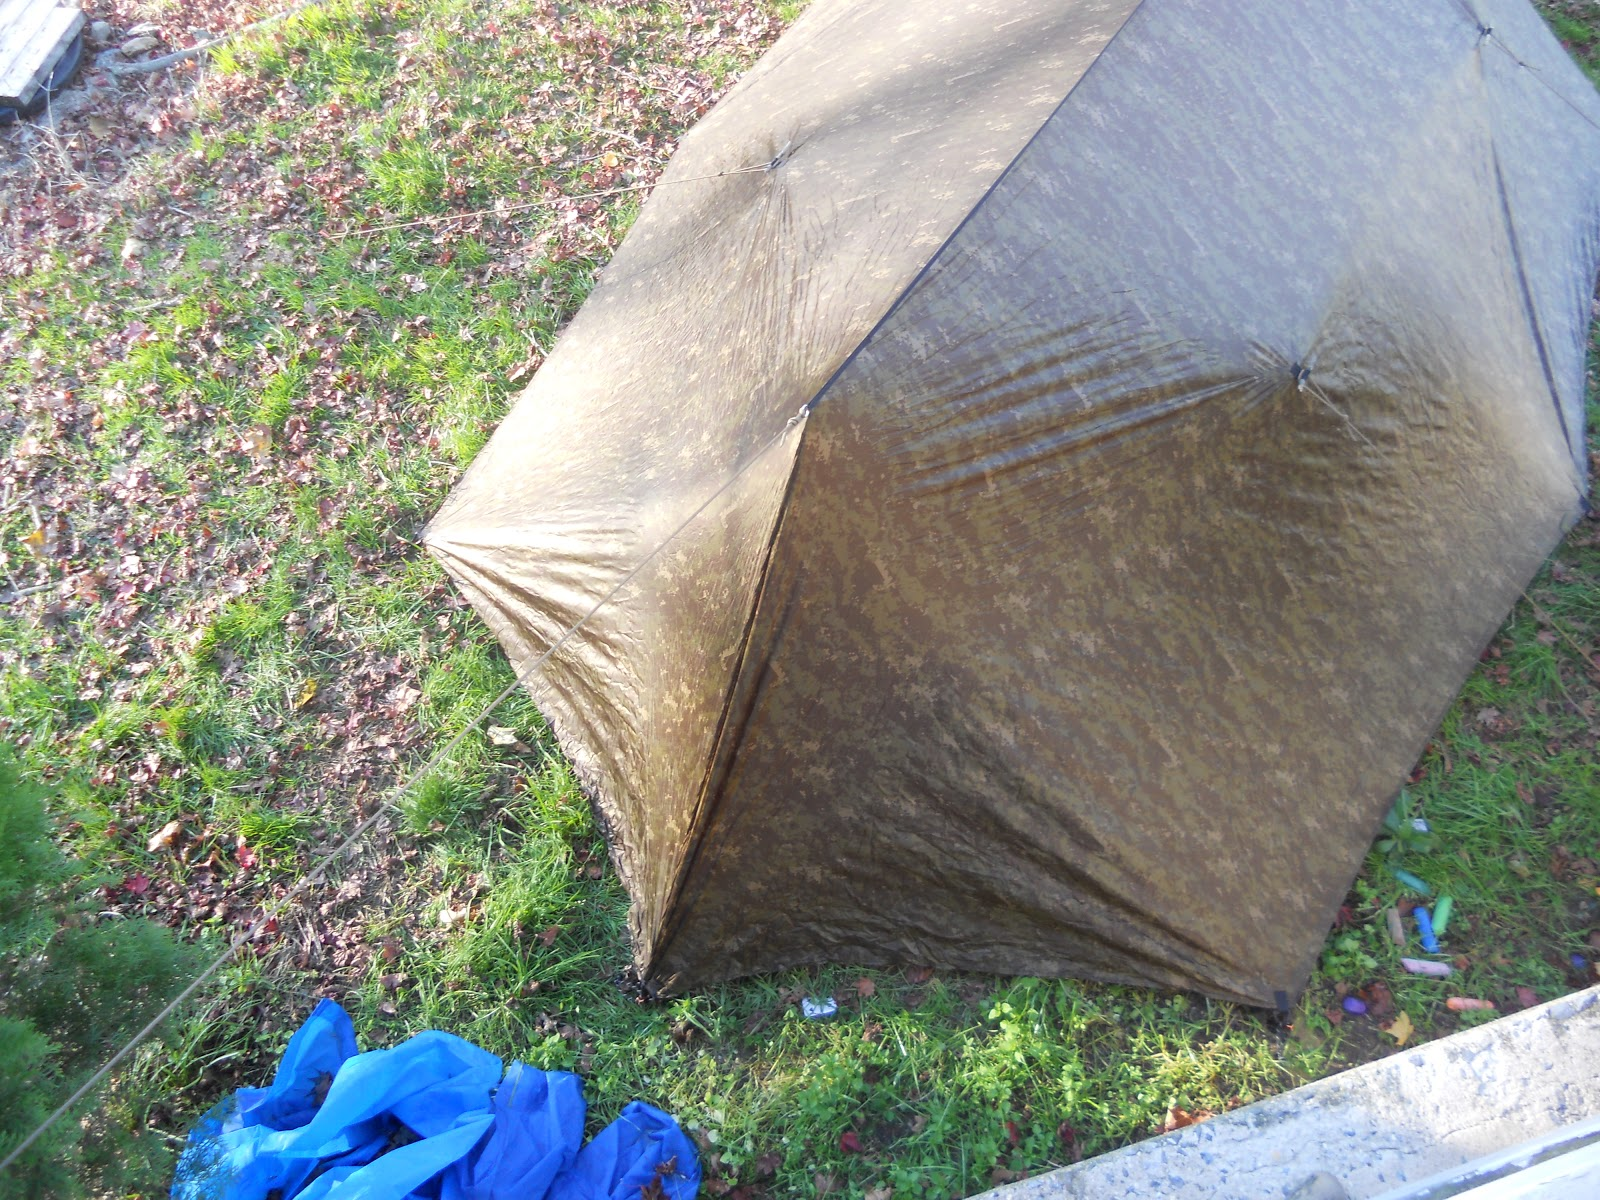 Showing how to close off the doors. & Modern Combative Systems LLC: Warbonnet Superfly Ground Tarp - First ...